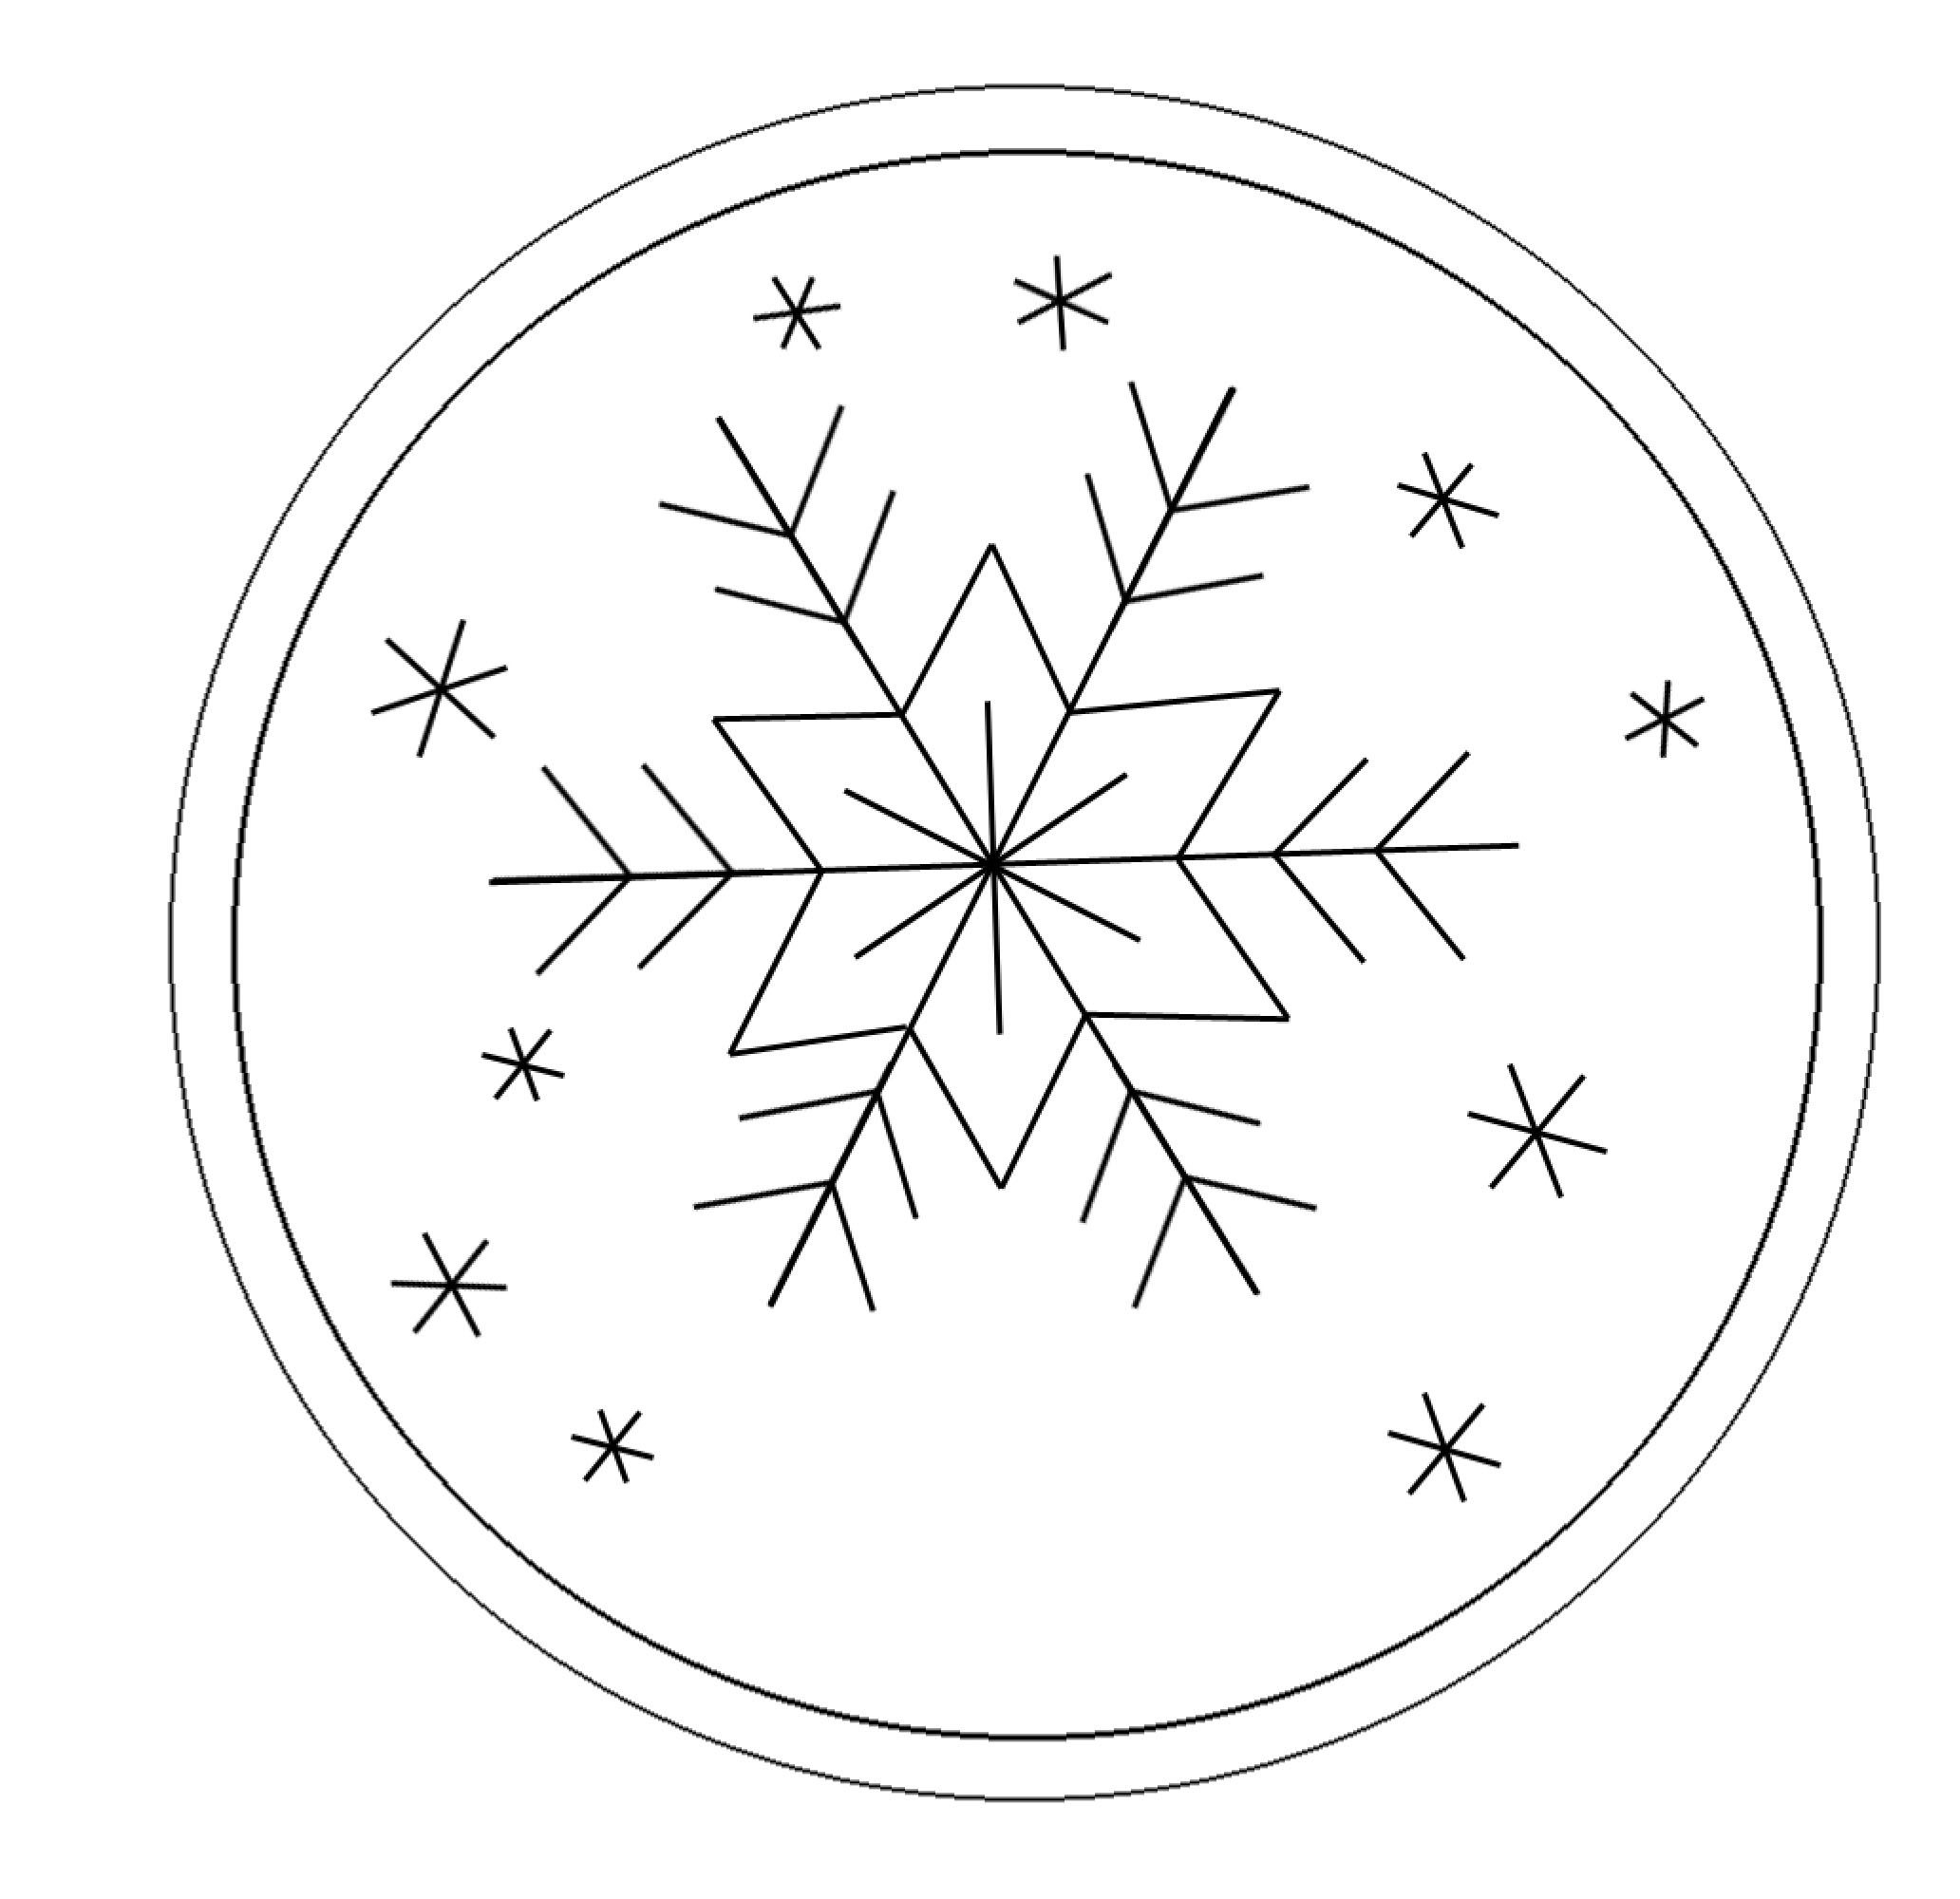 Snowflake Ornament (Free Hand Embroidery Pattern) | Line Drawings - Free Printable Embroidery Patterns